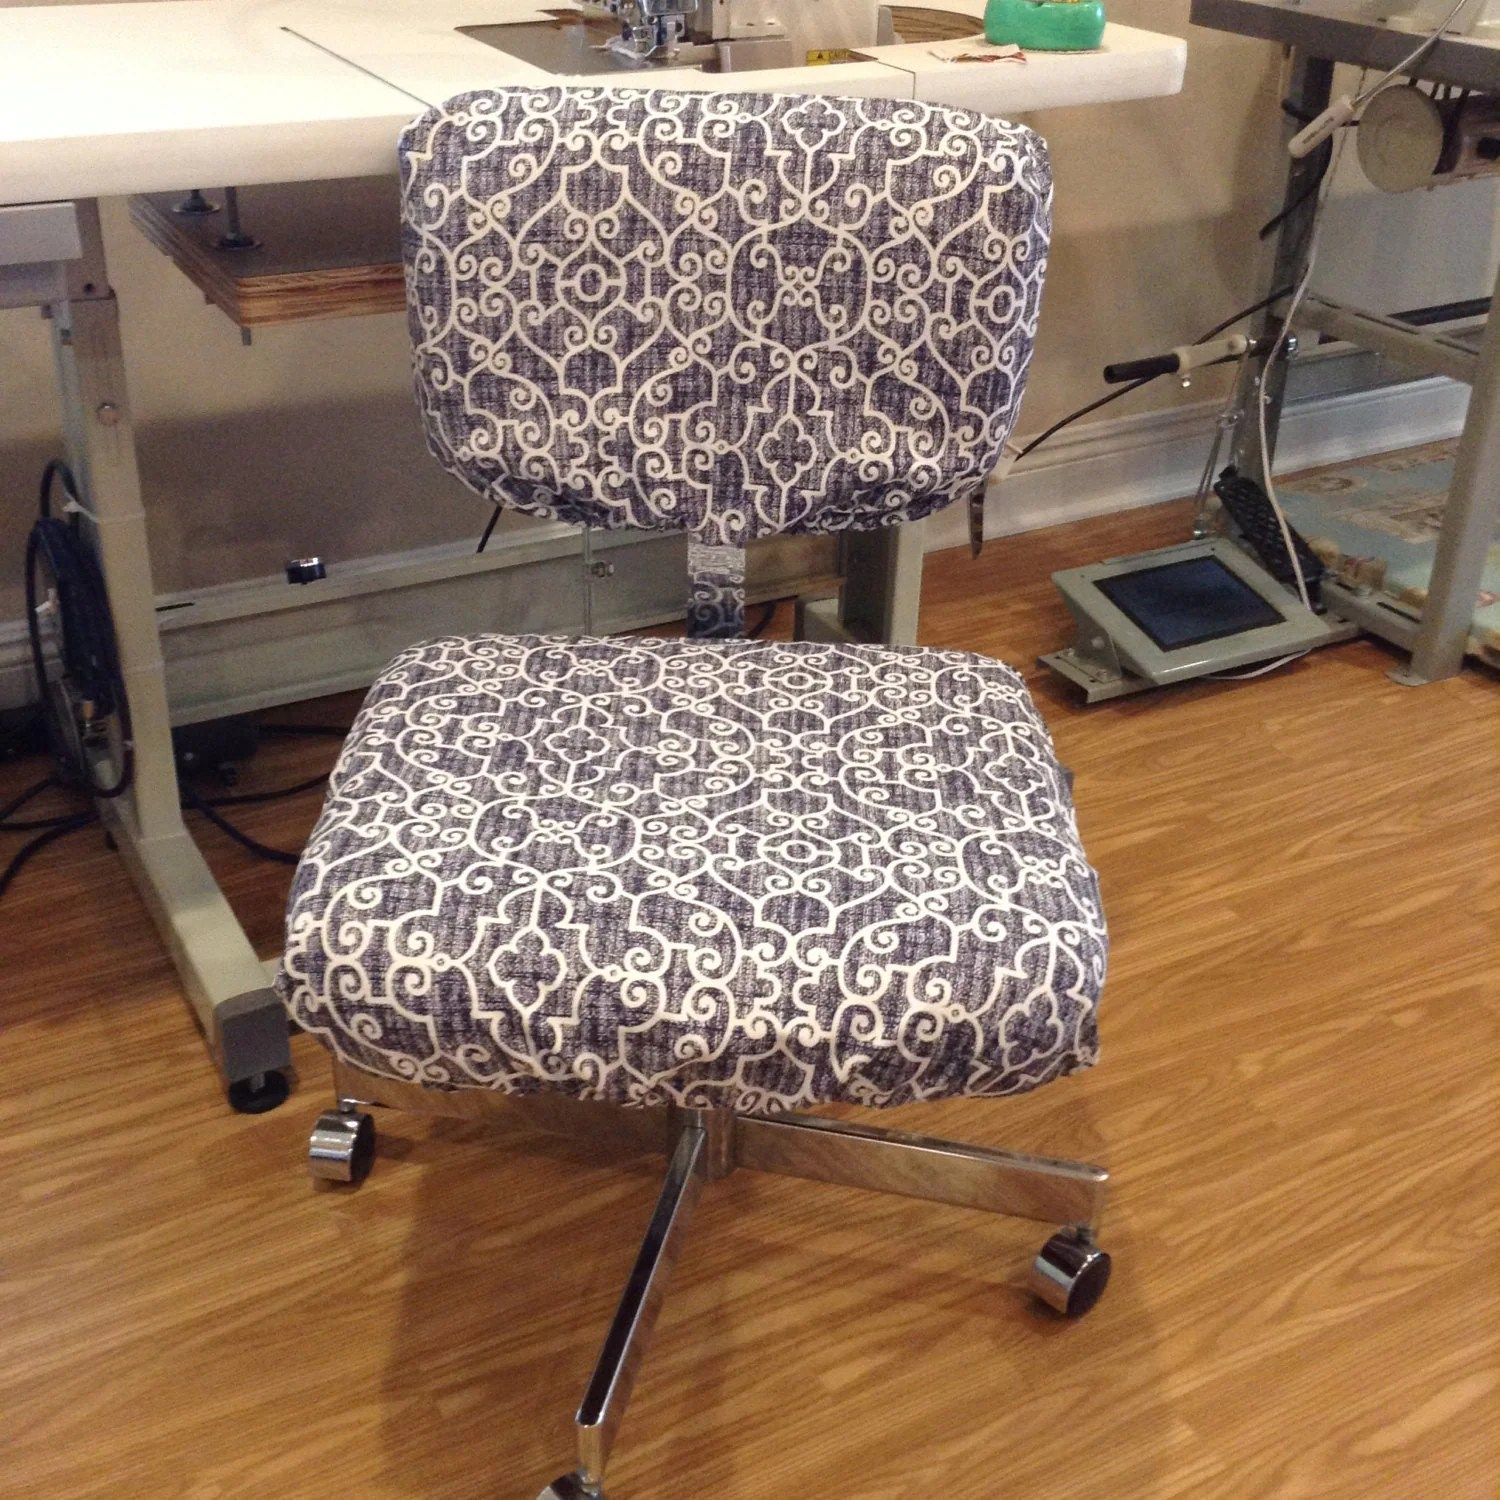 Office Chair Seat Covers Office Chair Seat And Back Covers With Monogram Dorm Chair